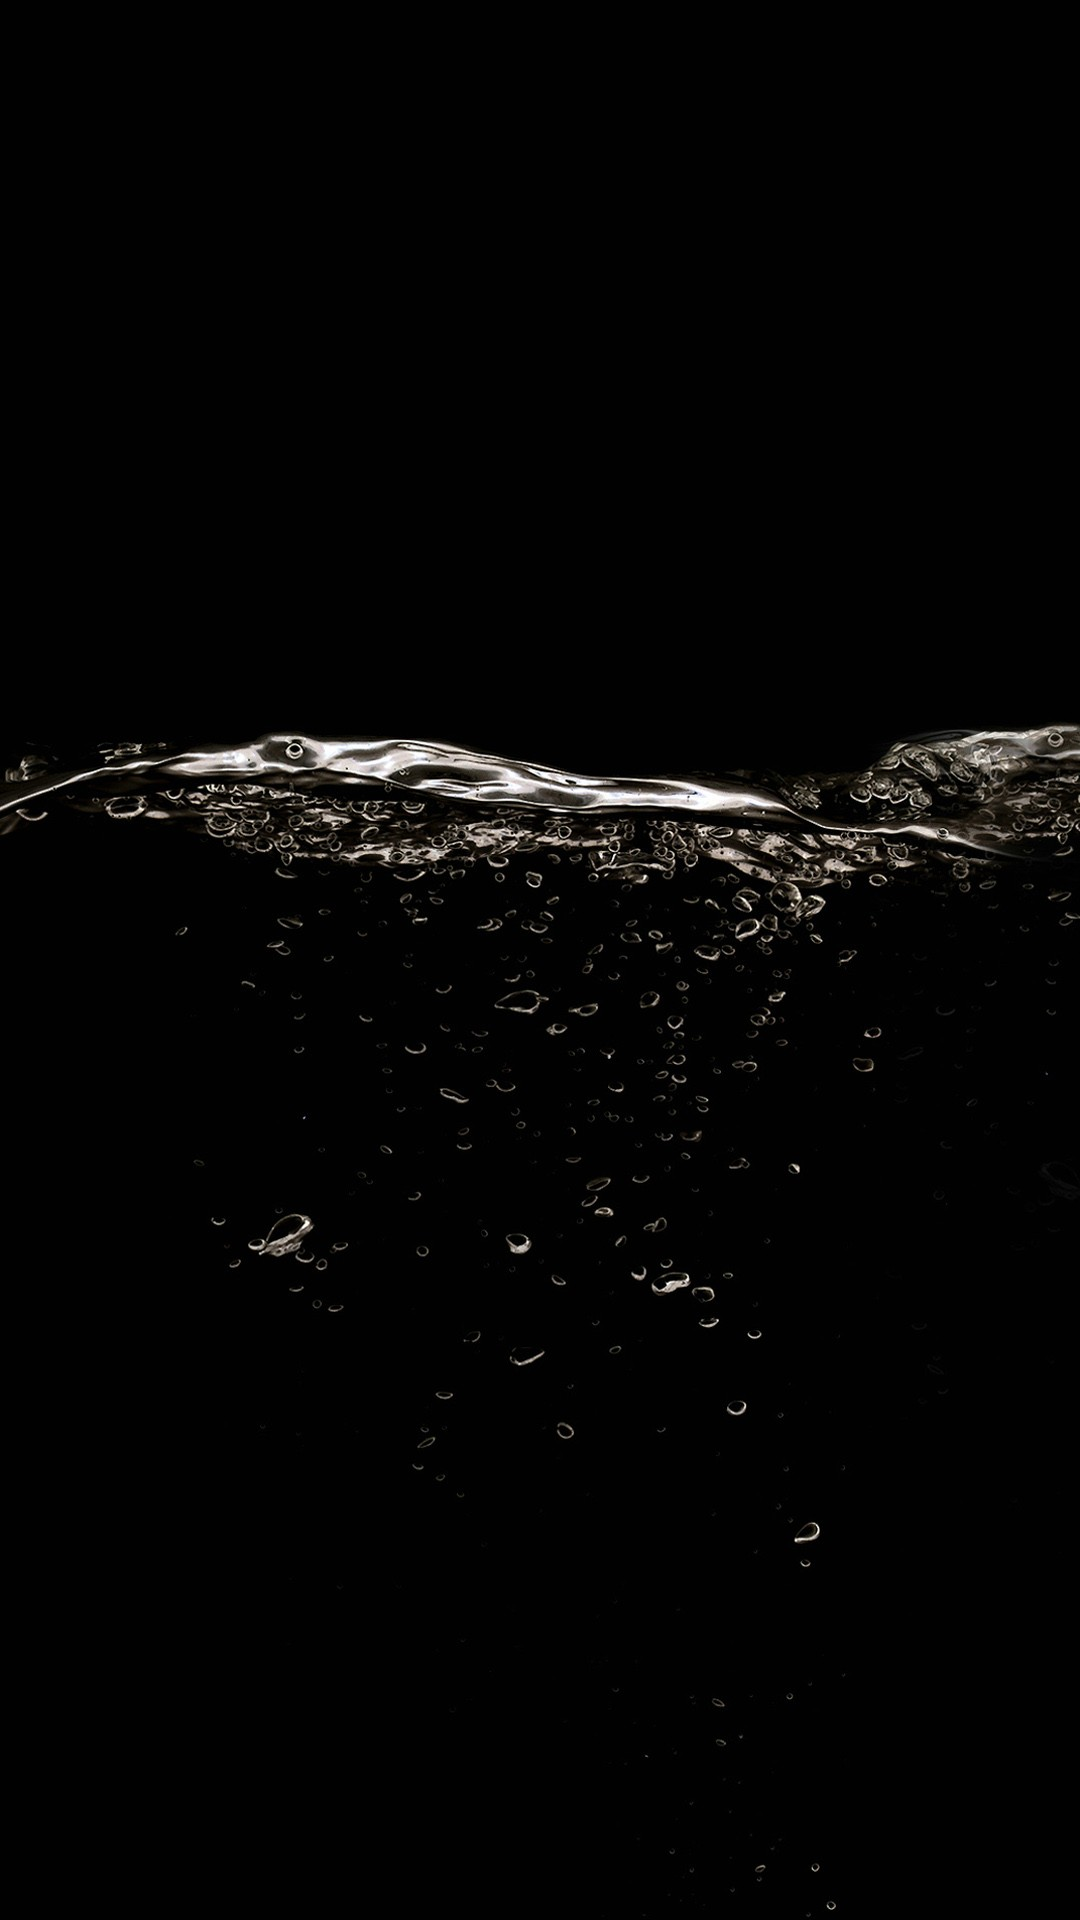 Black background and water HD samsung galaxy s4 wallpaper 1080x1920